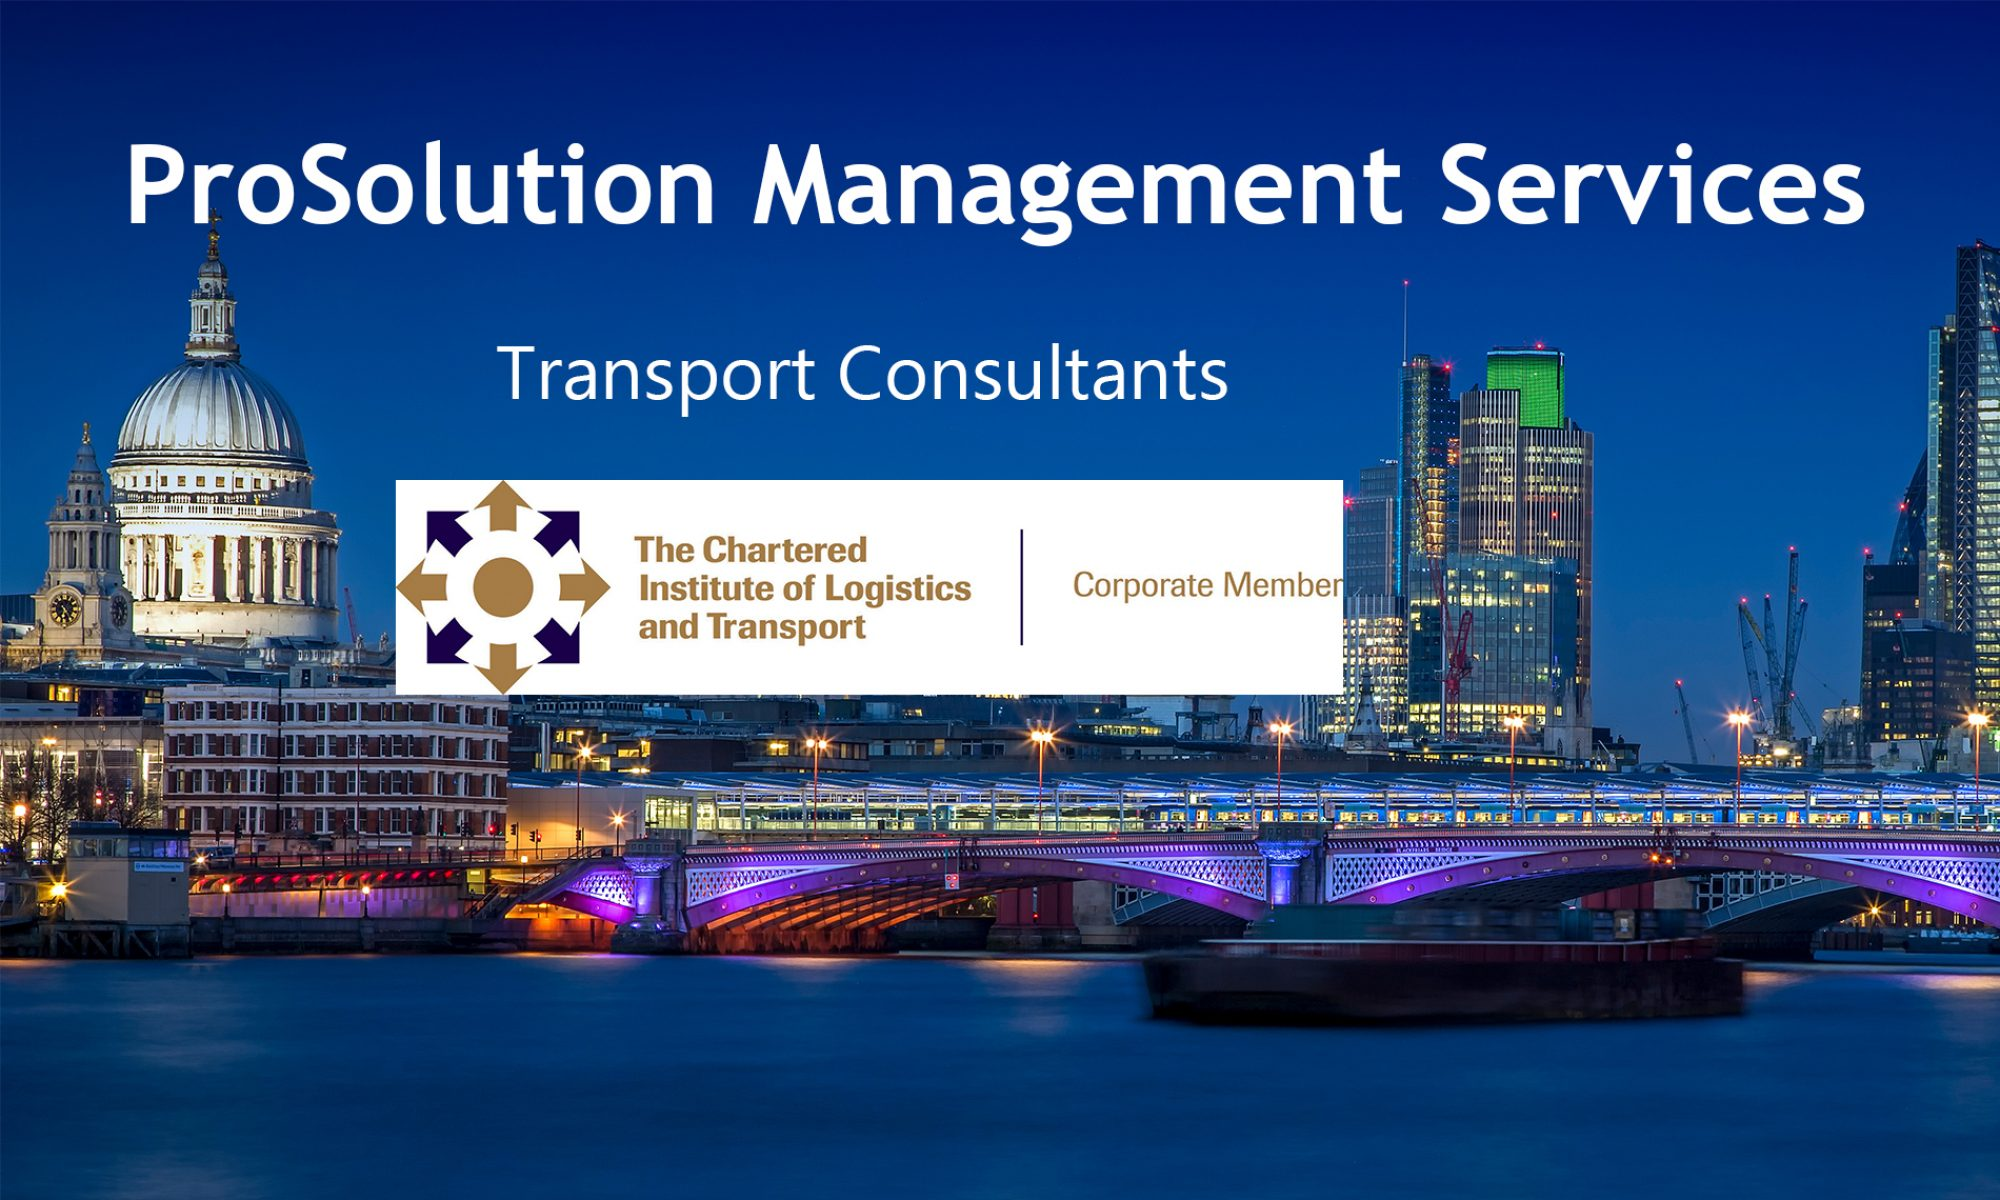 ProSolution Management Services